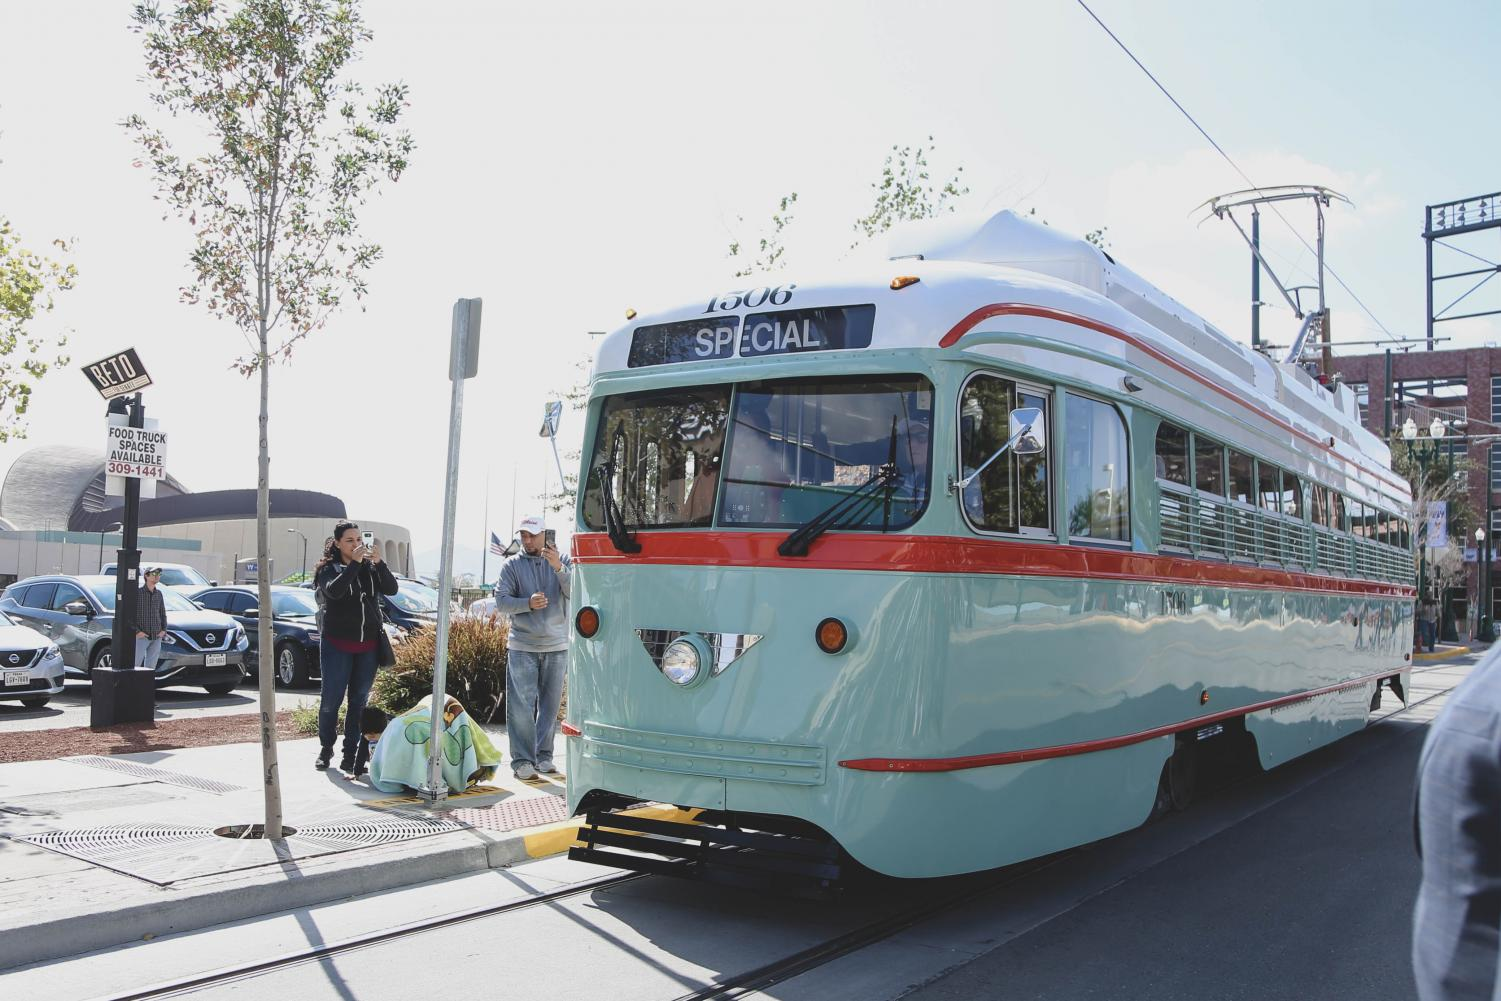 The+first+streetcar+is+introduced+at++the+street+car+inauguration+on+Friday+morning%2C+Nov.+9.+